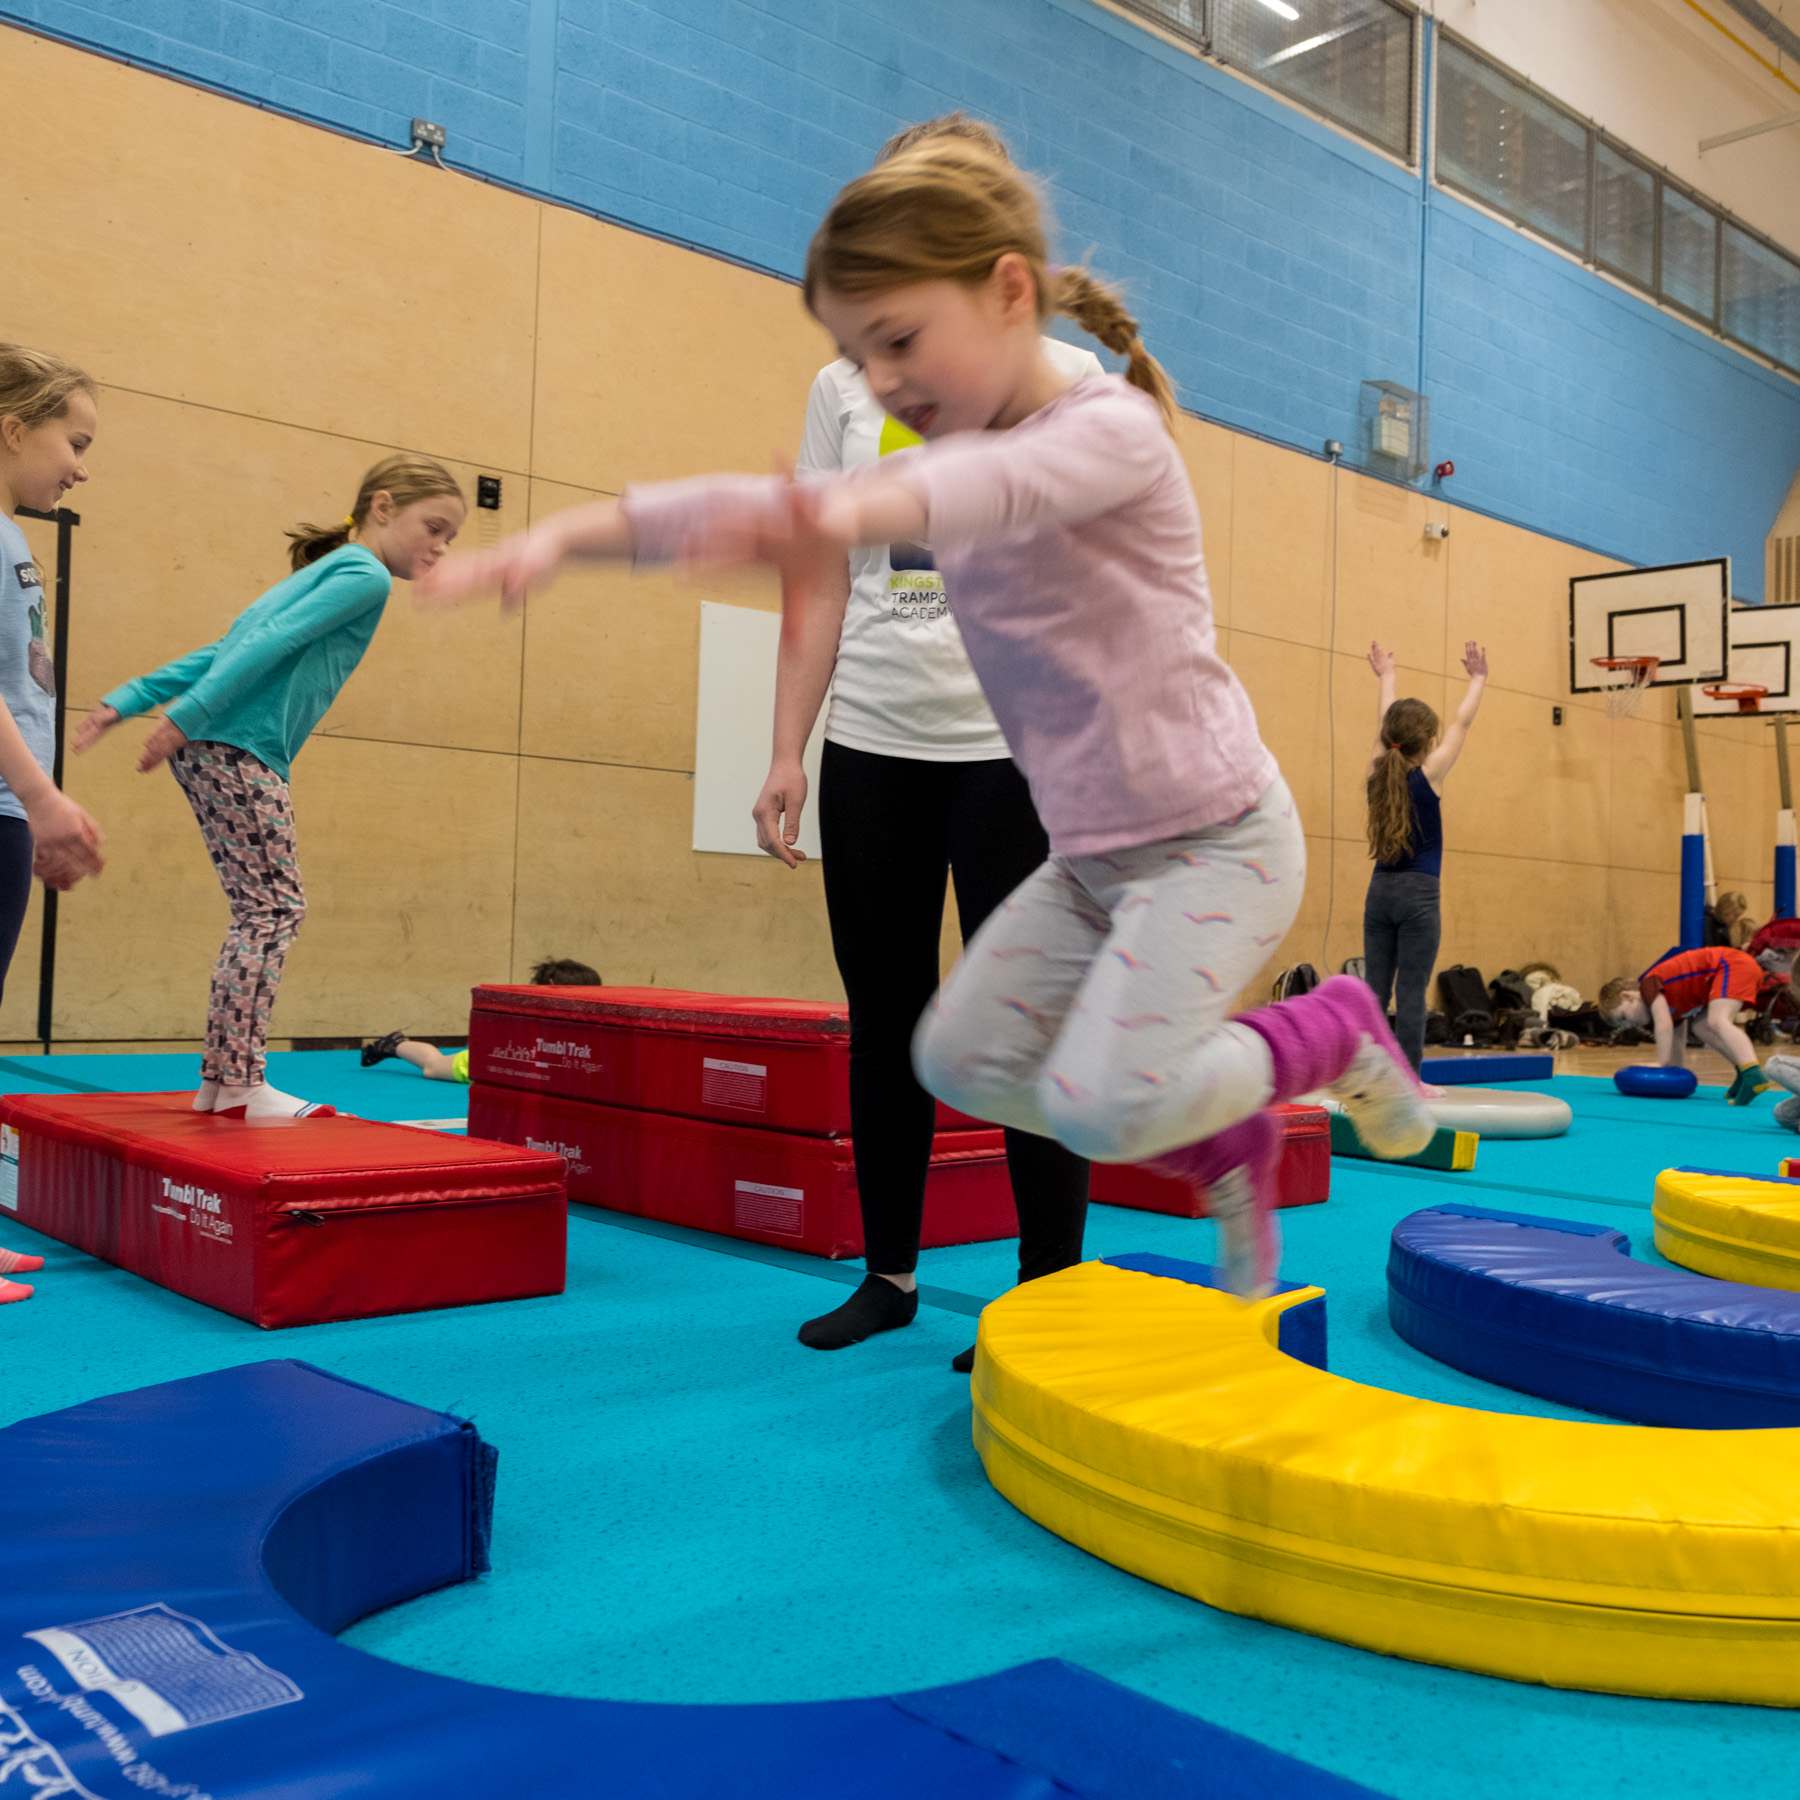 Girl jumping on soft play equipment, to help preare to make the most of time on the trampoline